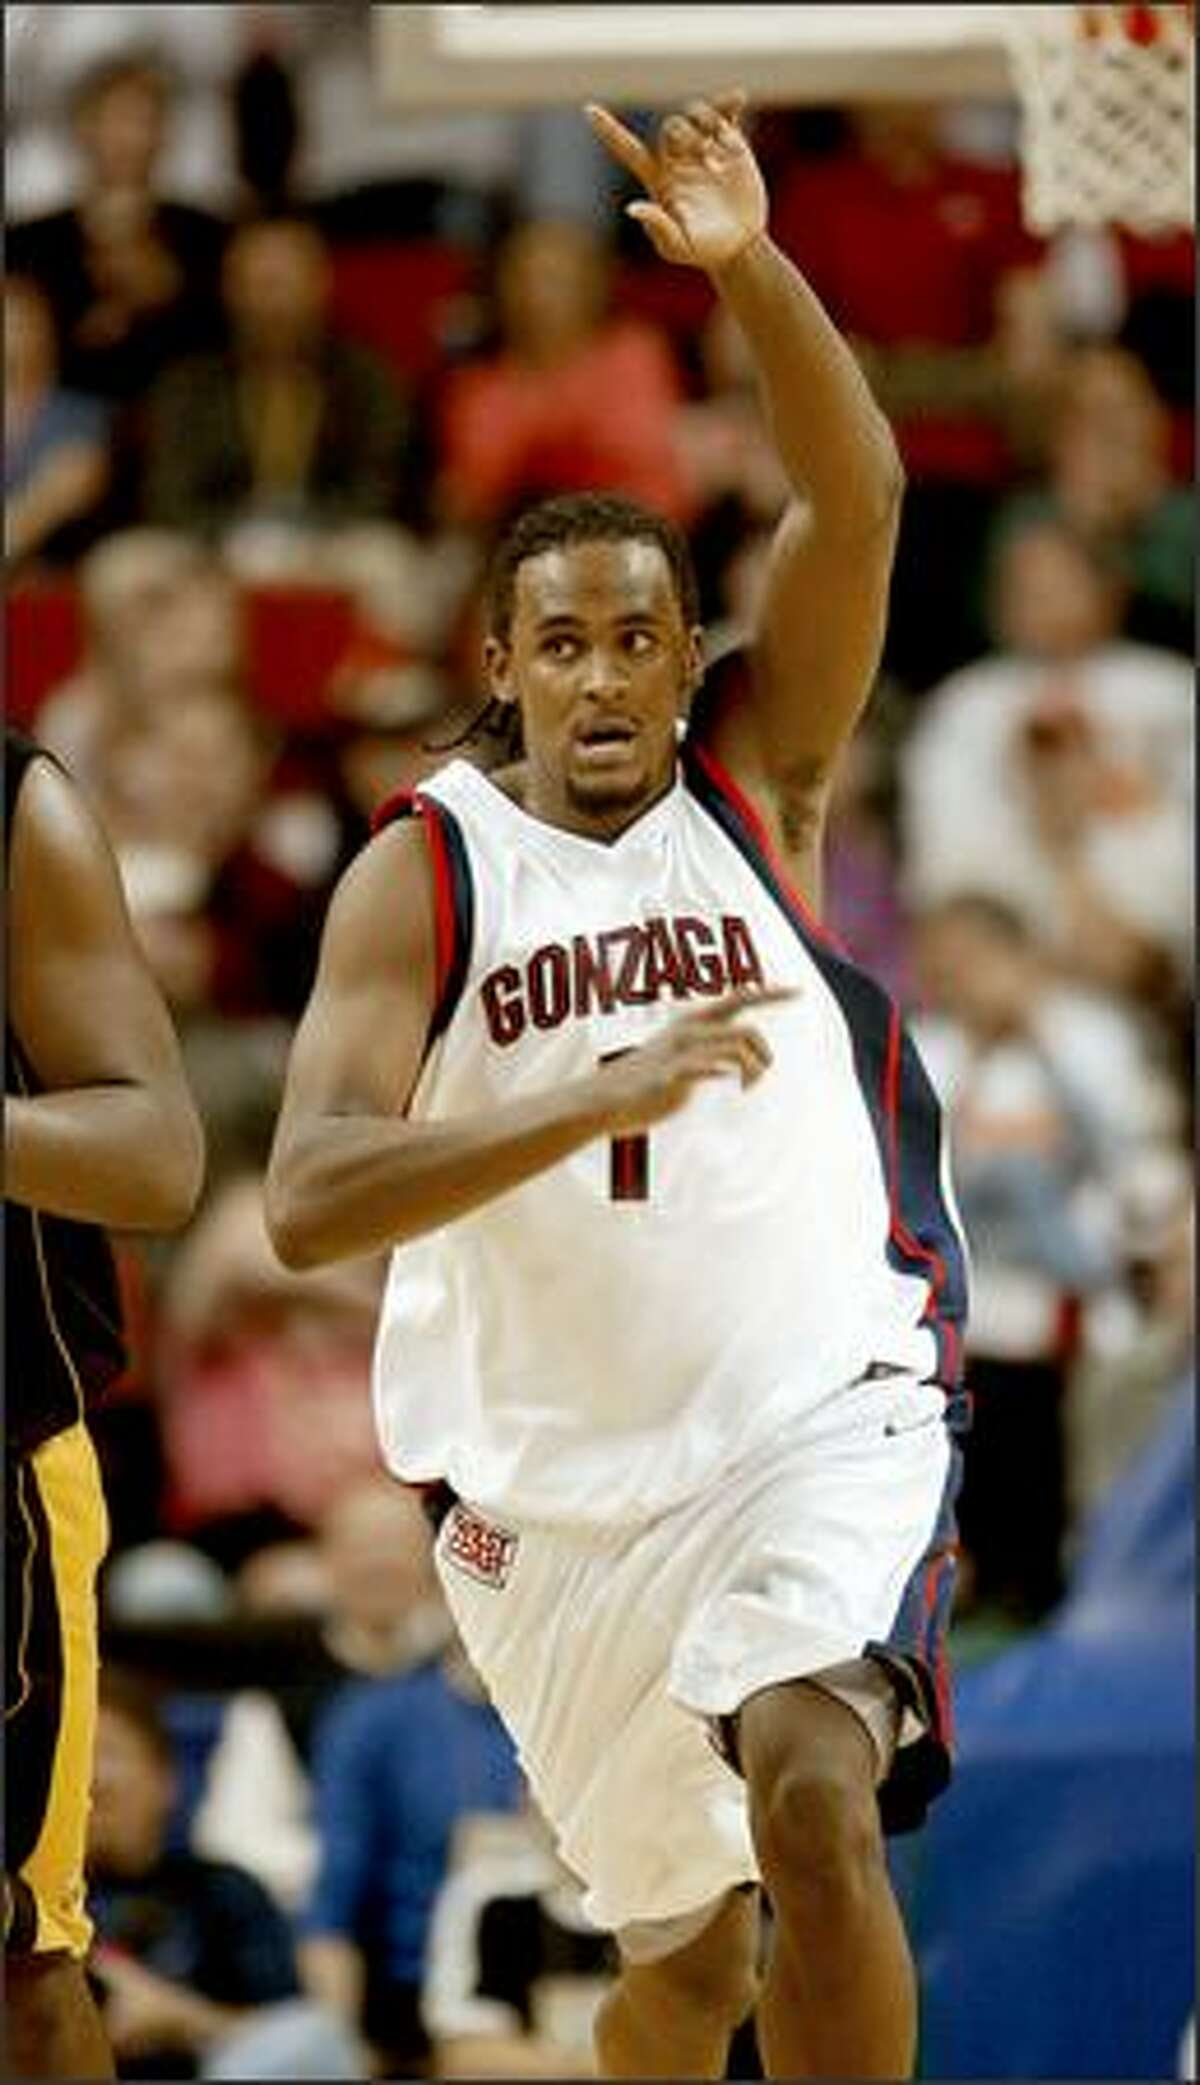 Gonzaga's Ronny Turiaf shook off a poor first half performance and looked dominating in the second half.